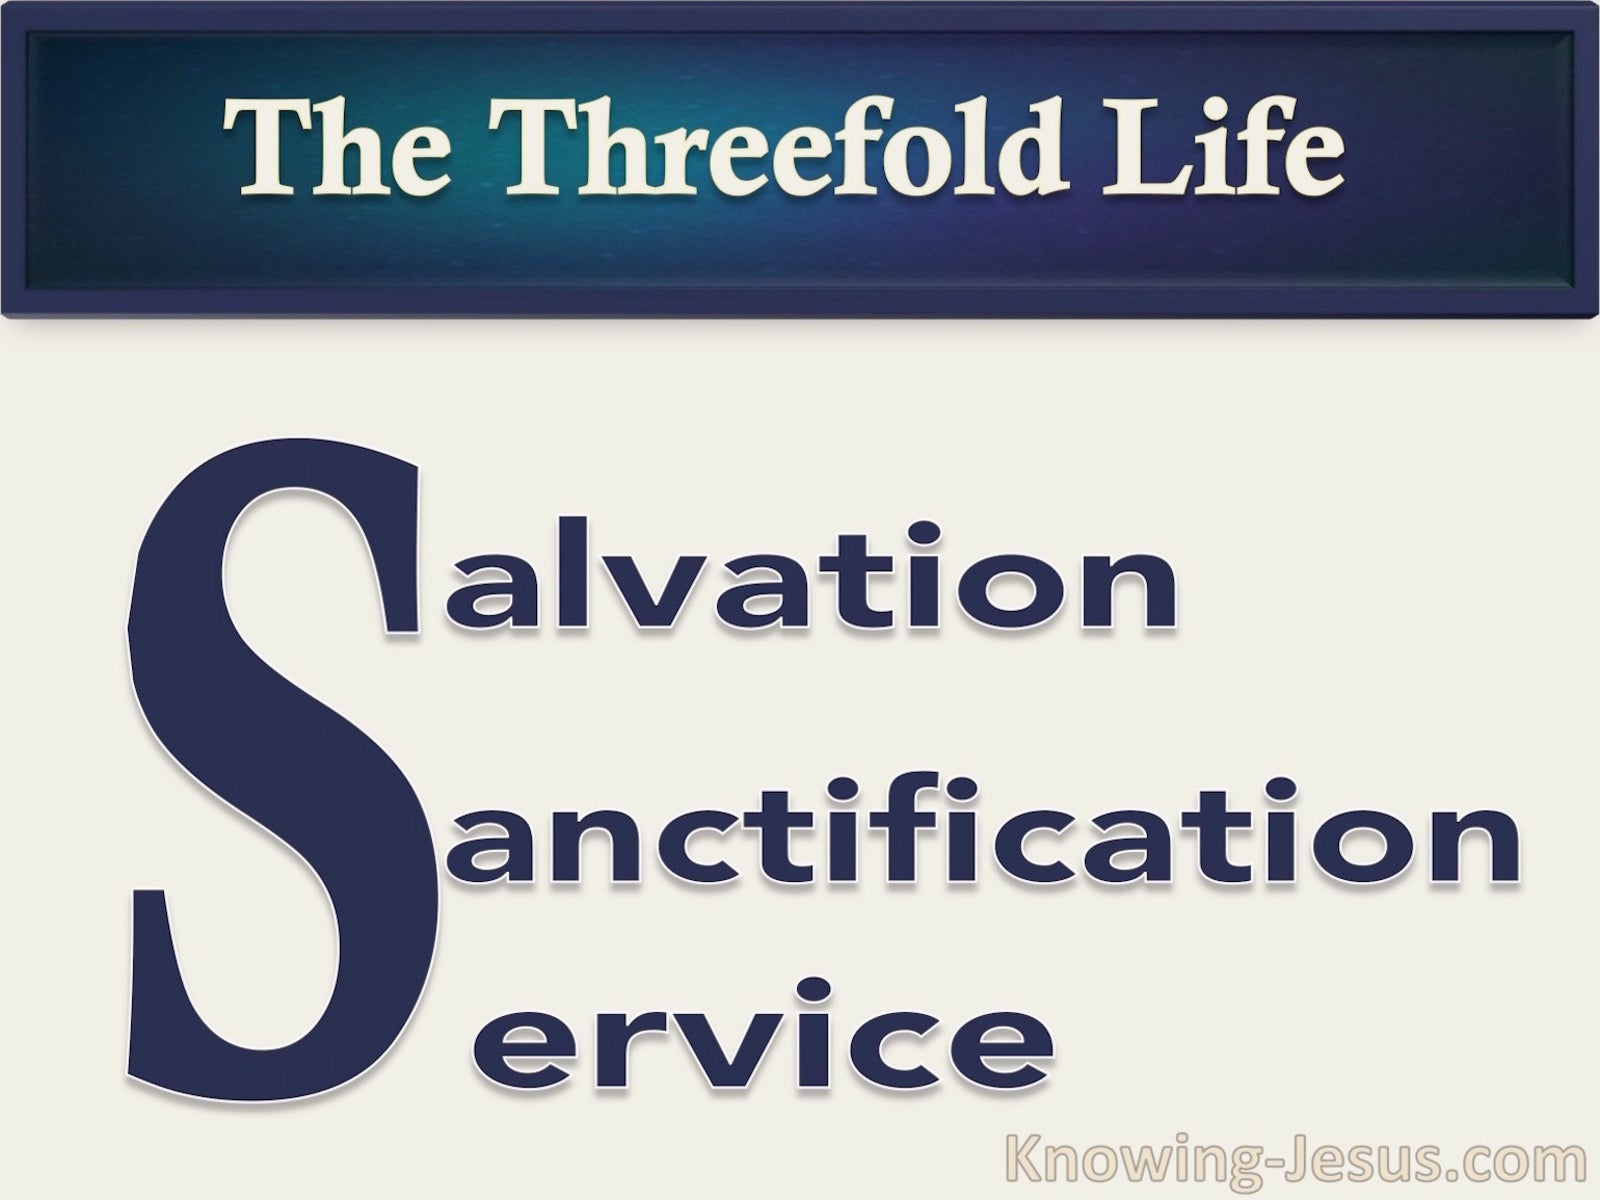 The Threefold Life (devotional)05-12 (navy)